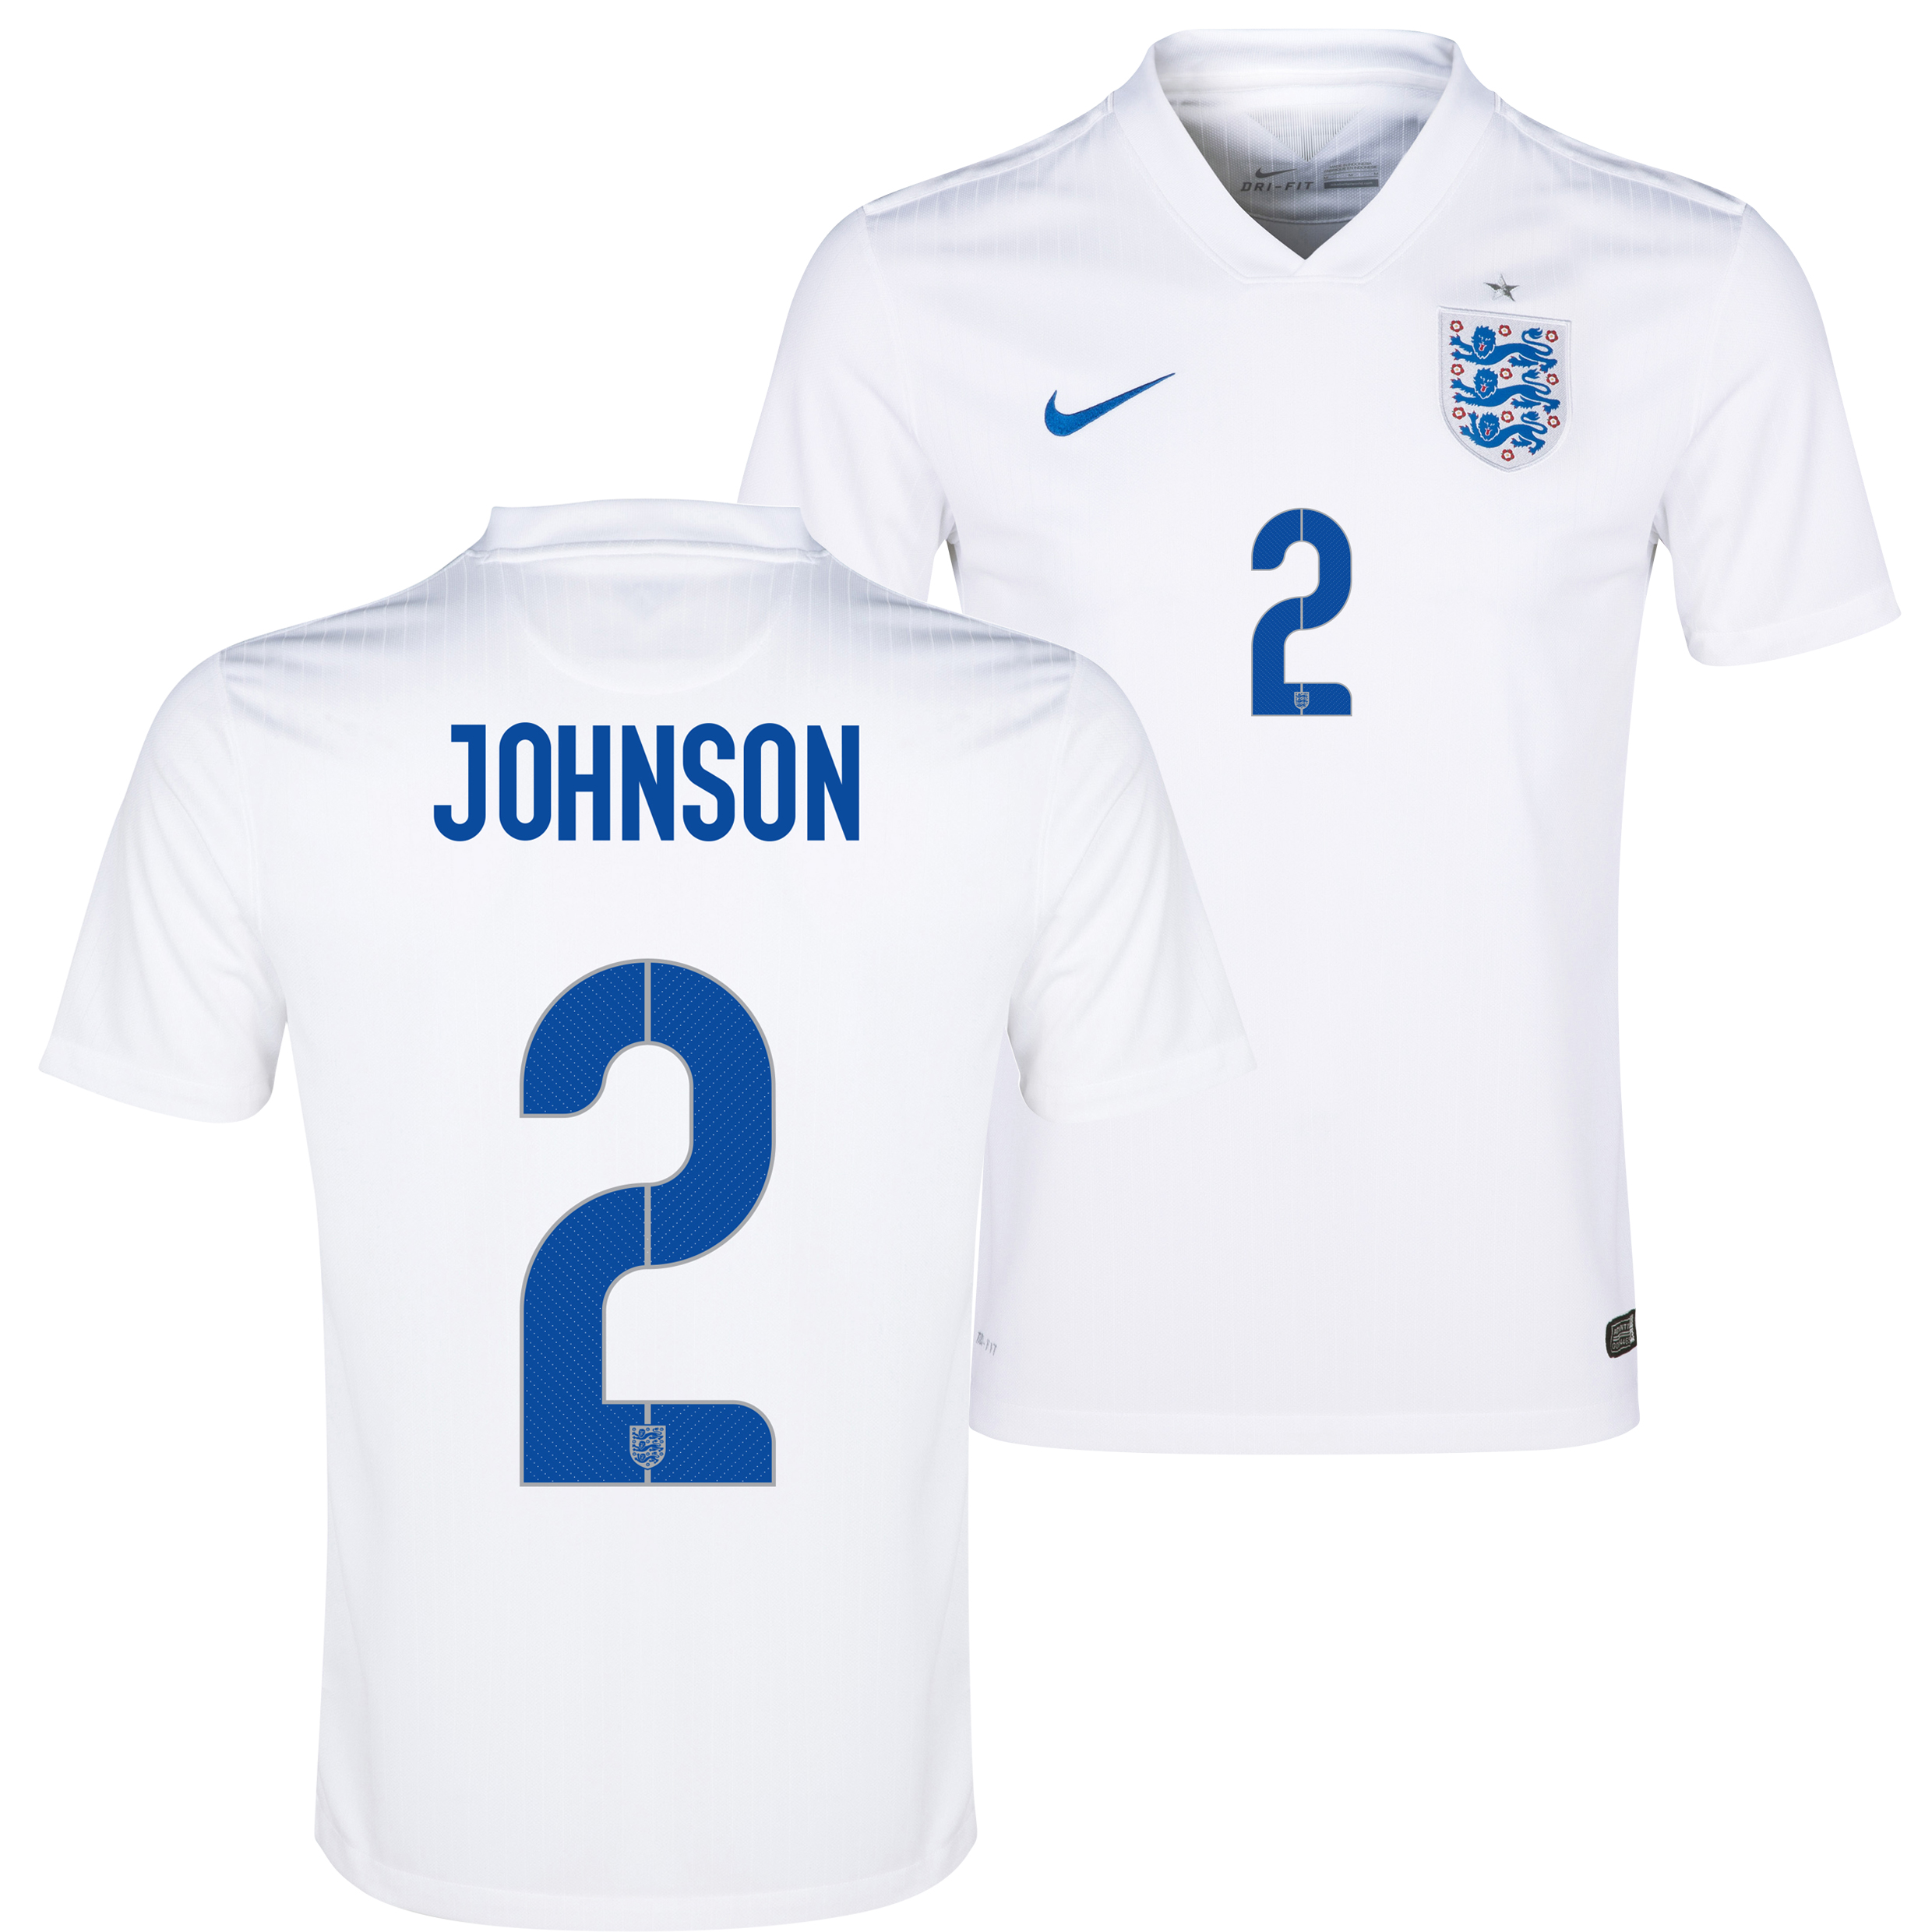 England Match Home Shirt 2014/15 White with Johnson 2 printing